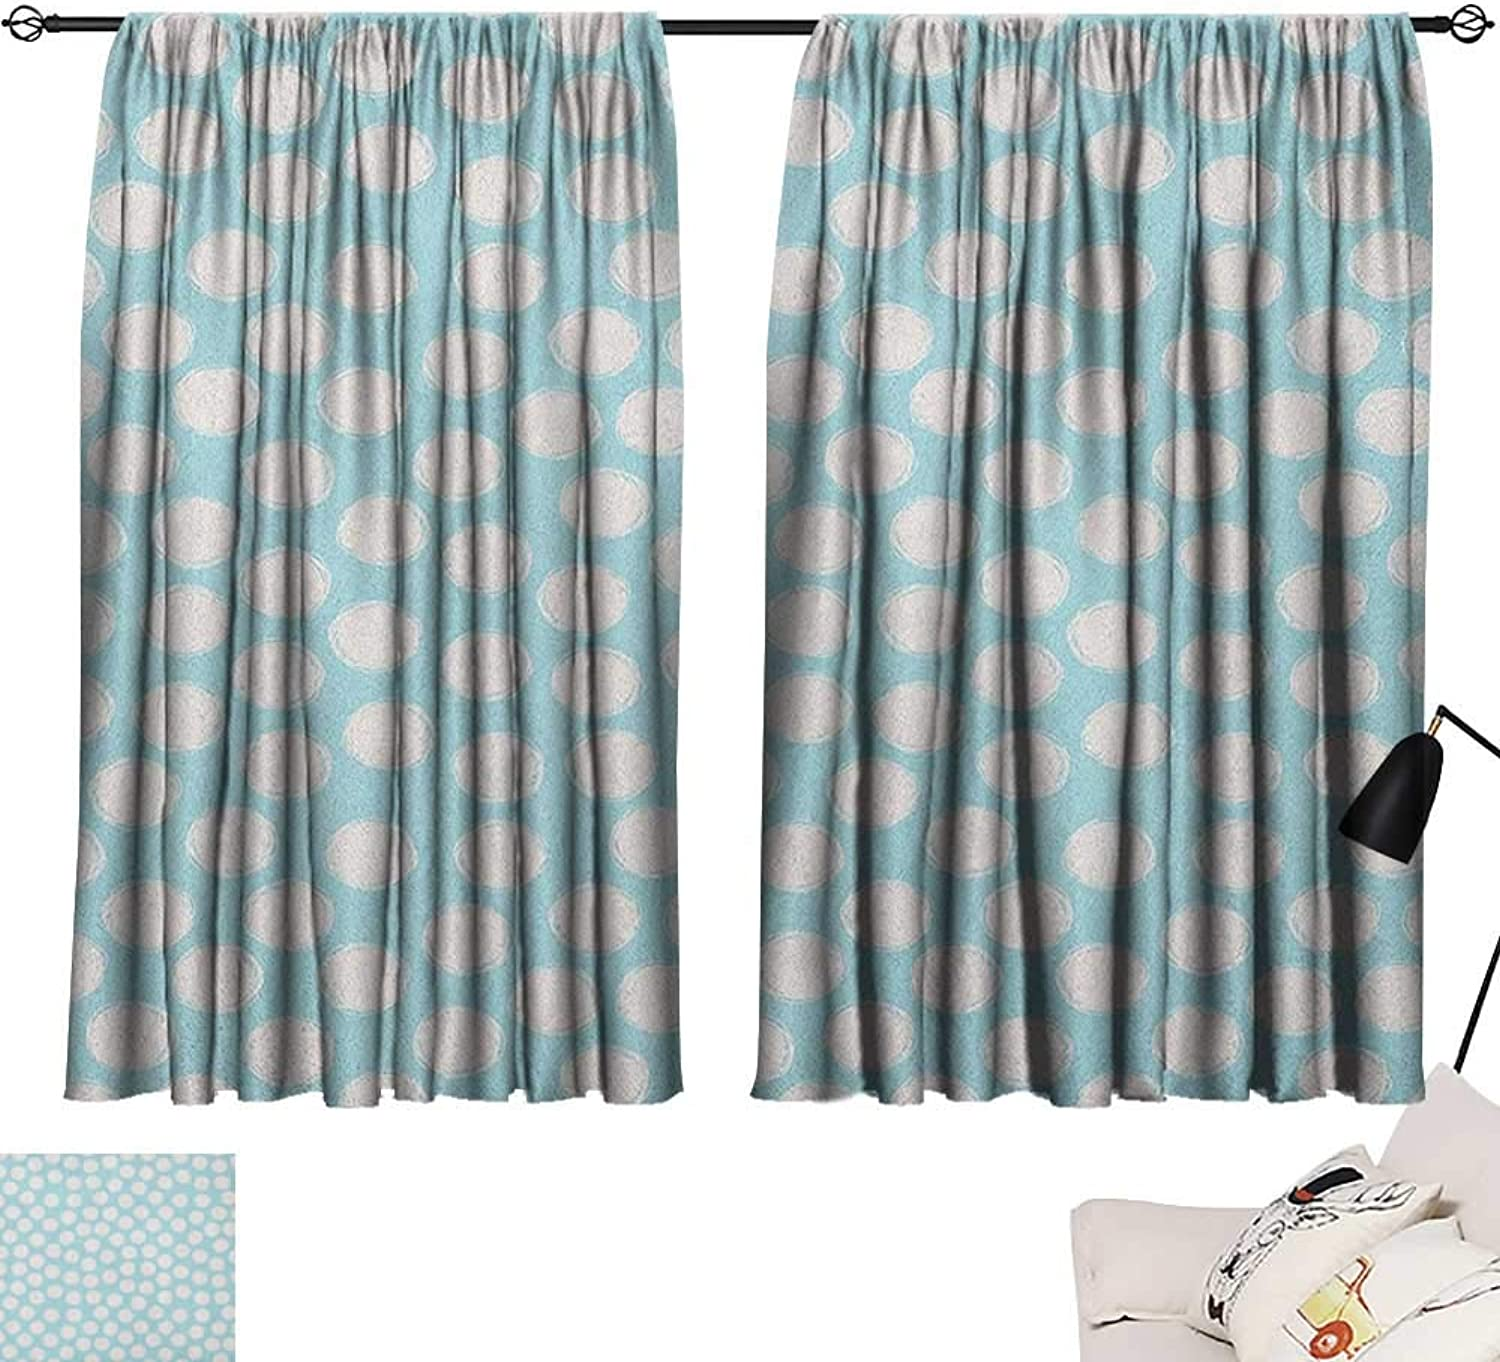 Warm Family Kids Sliding Curtains Doodle Style Spots on a Pale bluee Background Artistic Boys Kids Baby Pattern Suitable for Bedroom Living Room Study, etc.55 Wx63 L Pale bluee and White